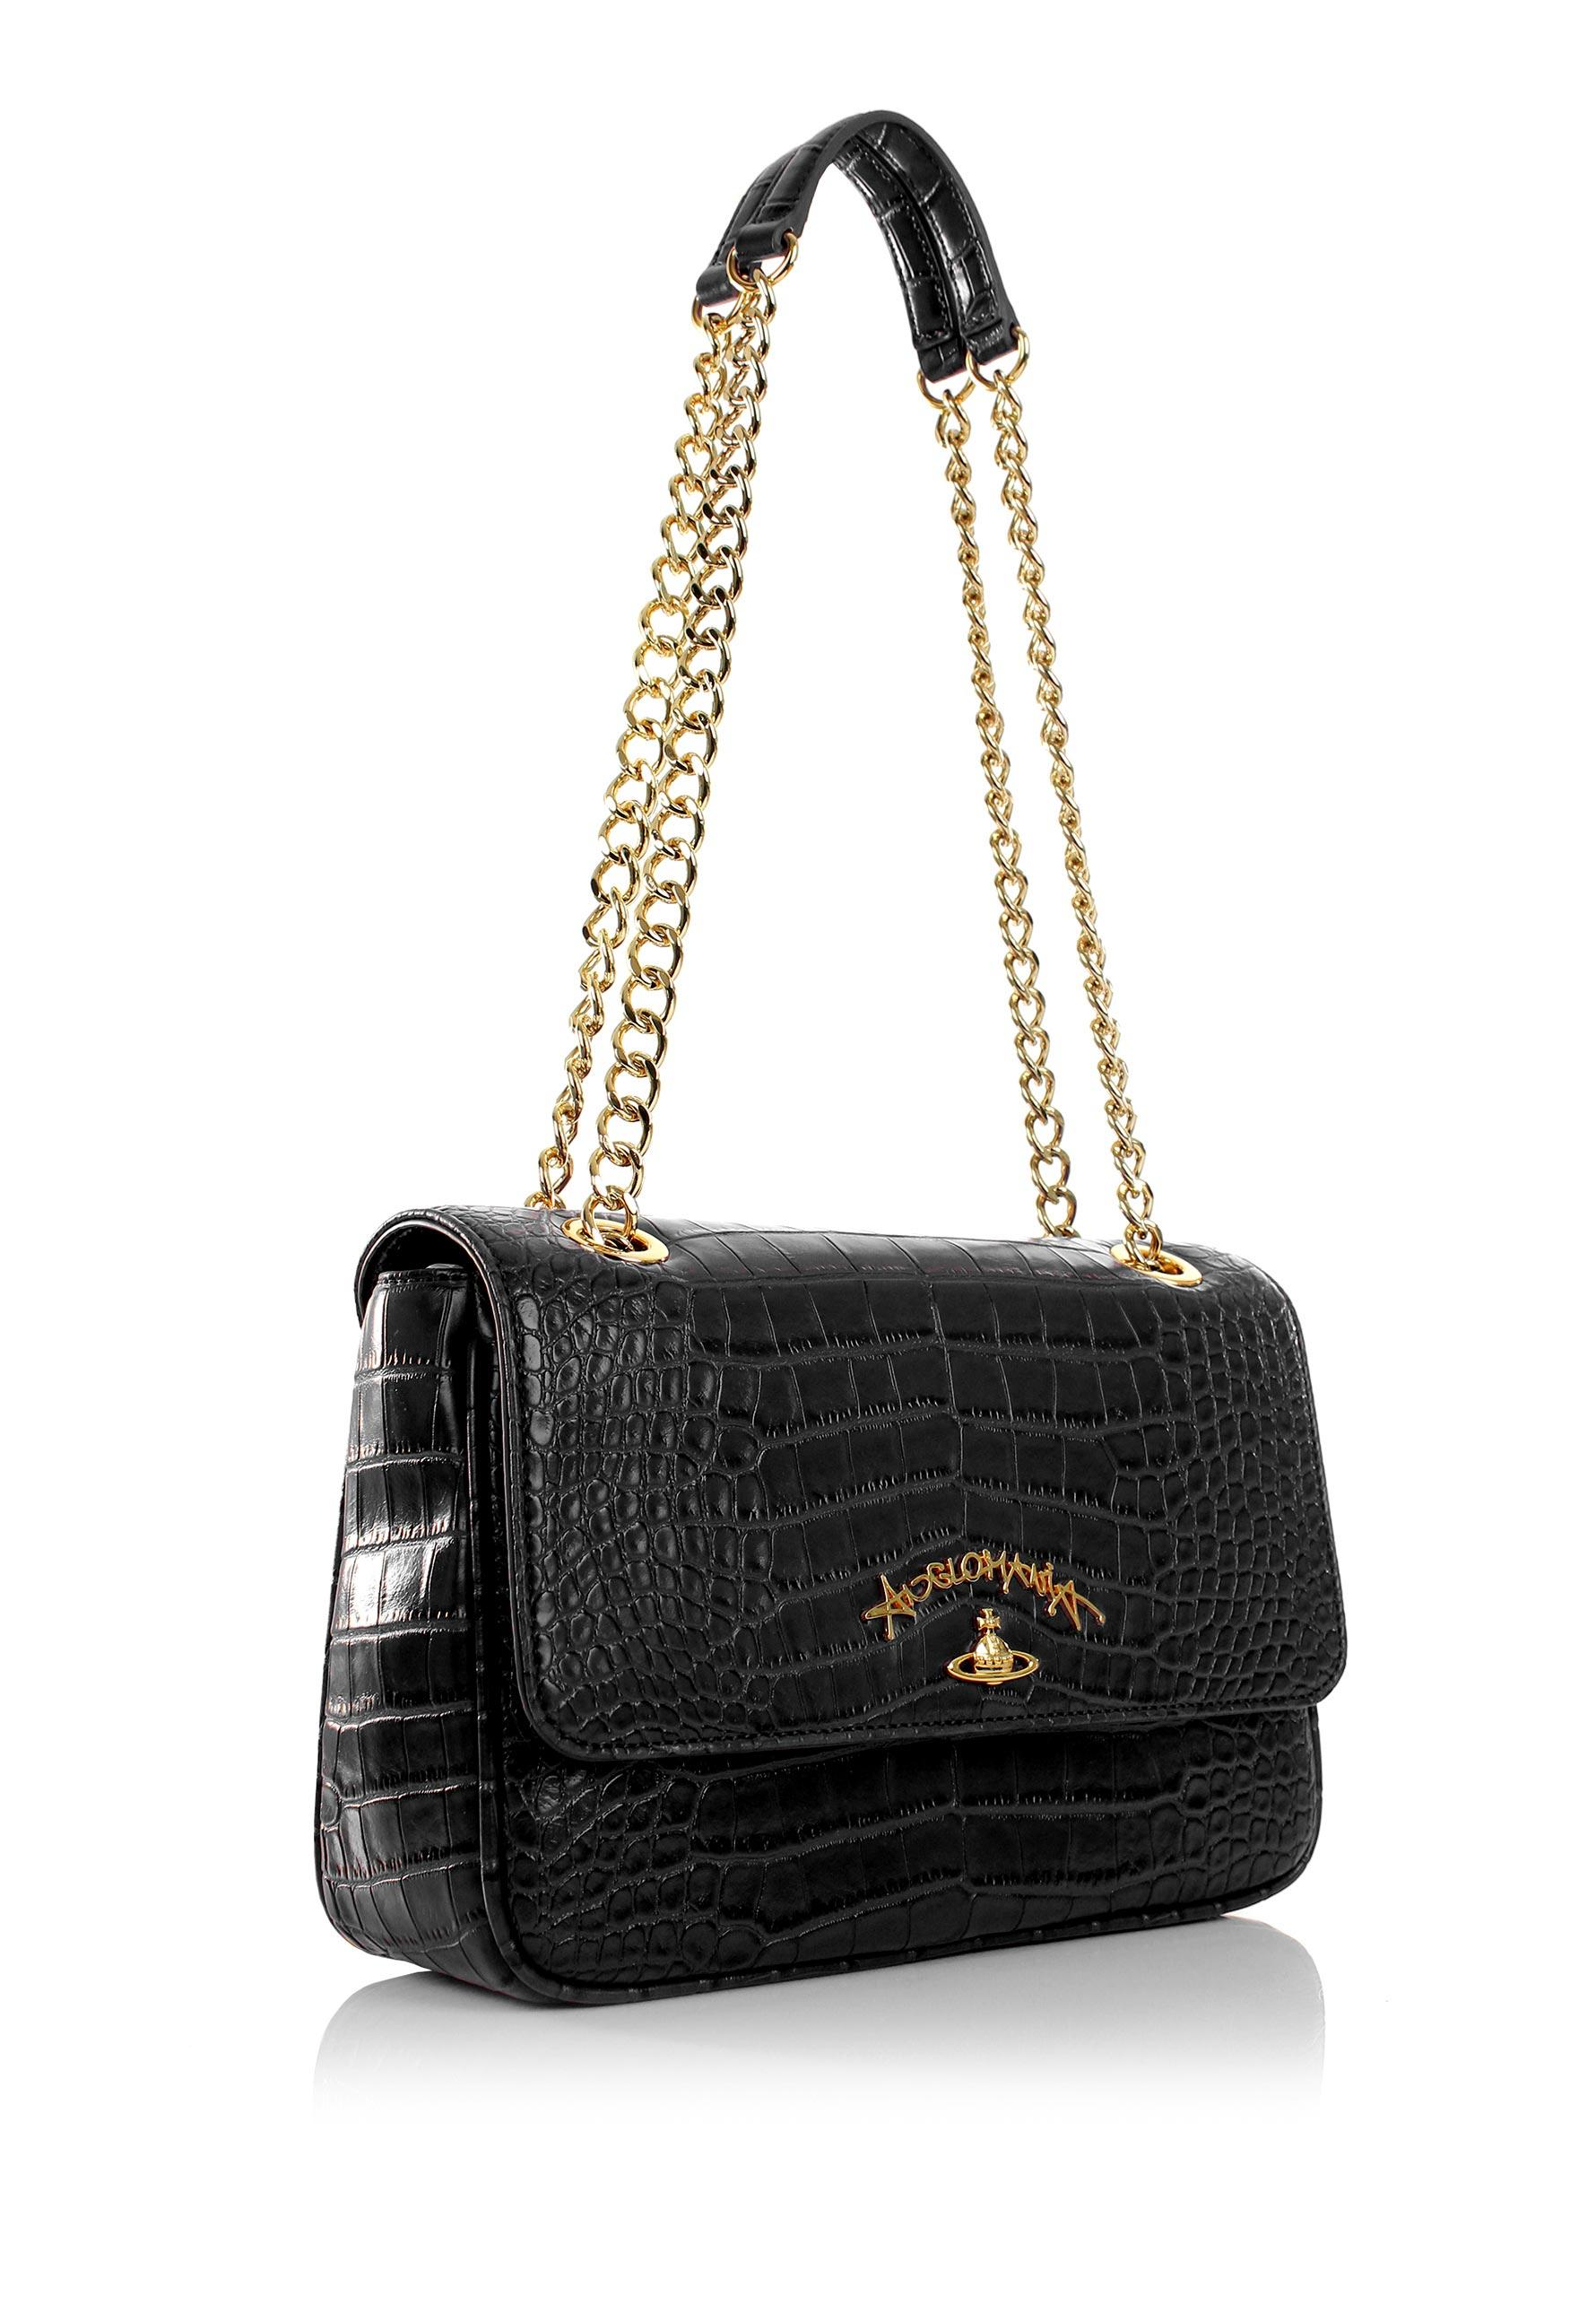 Vivienne Westwood Dorset 7273 Evening Bag With Flap Black in Black ... ccfb213cbb79f